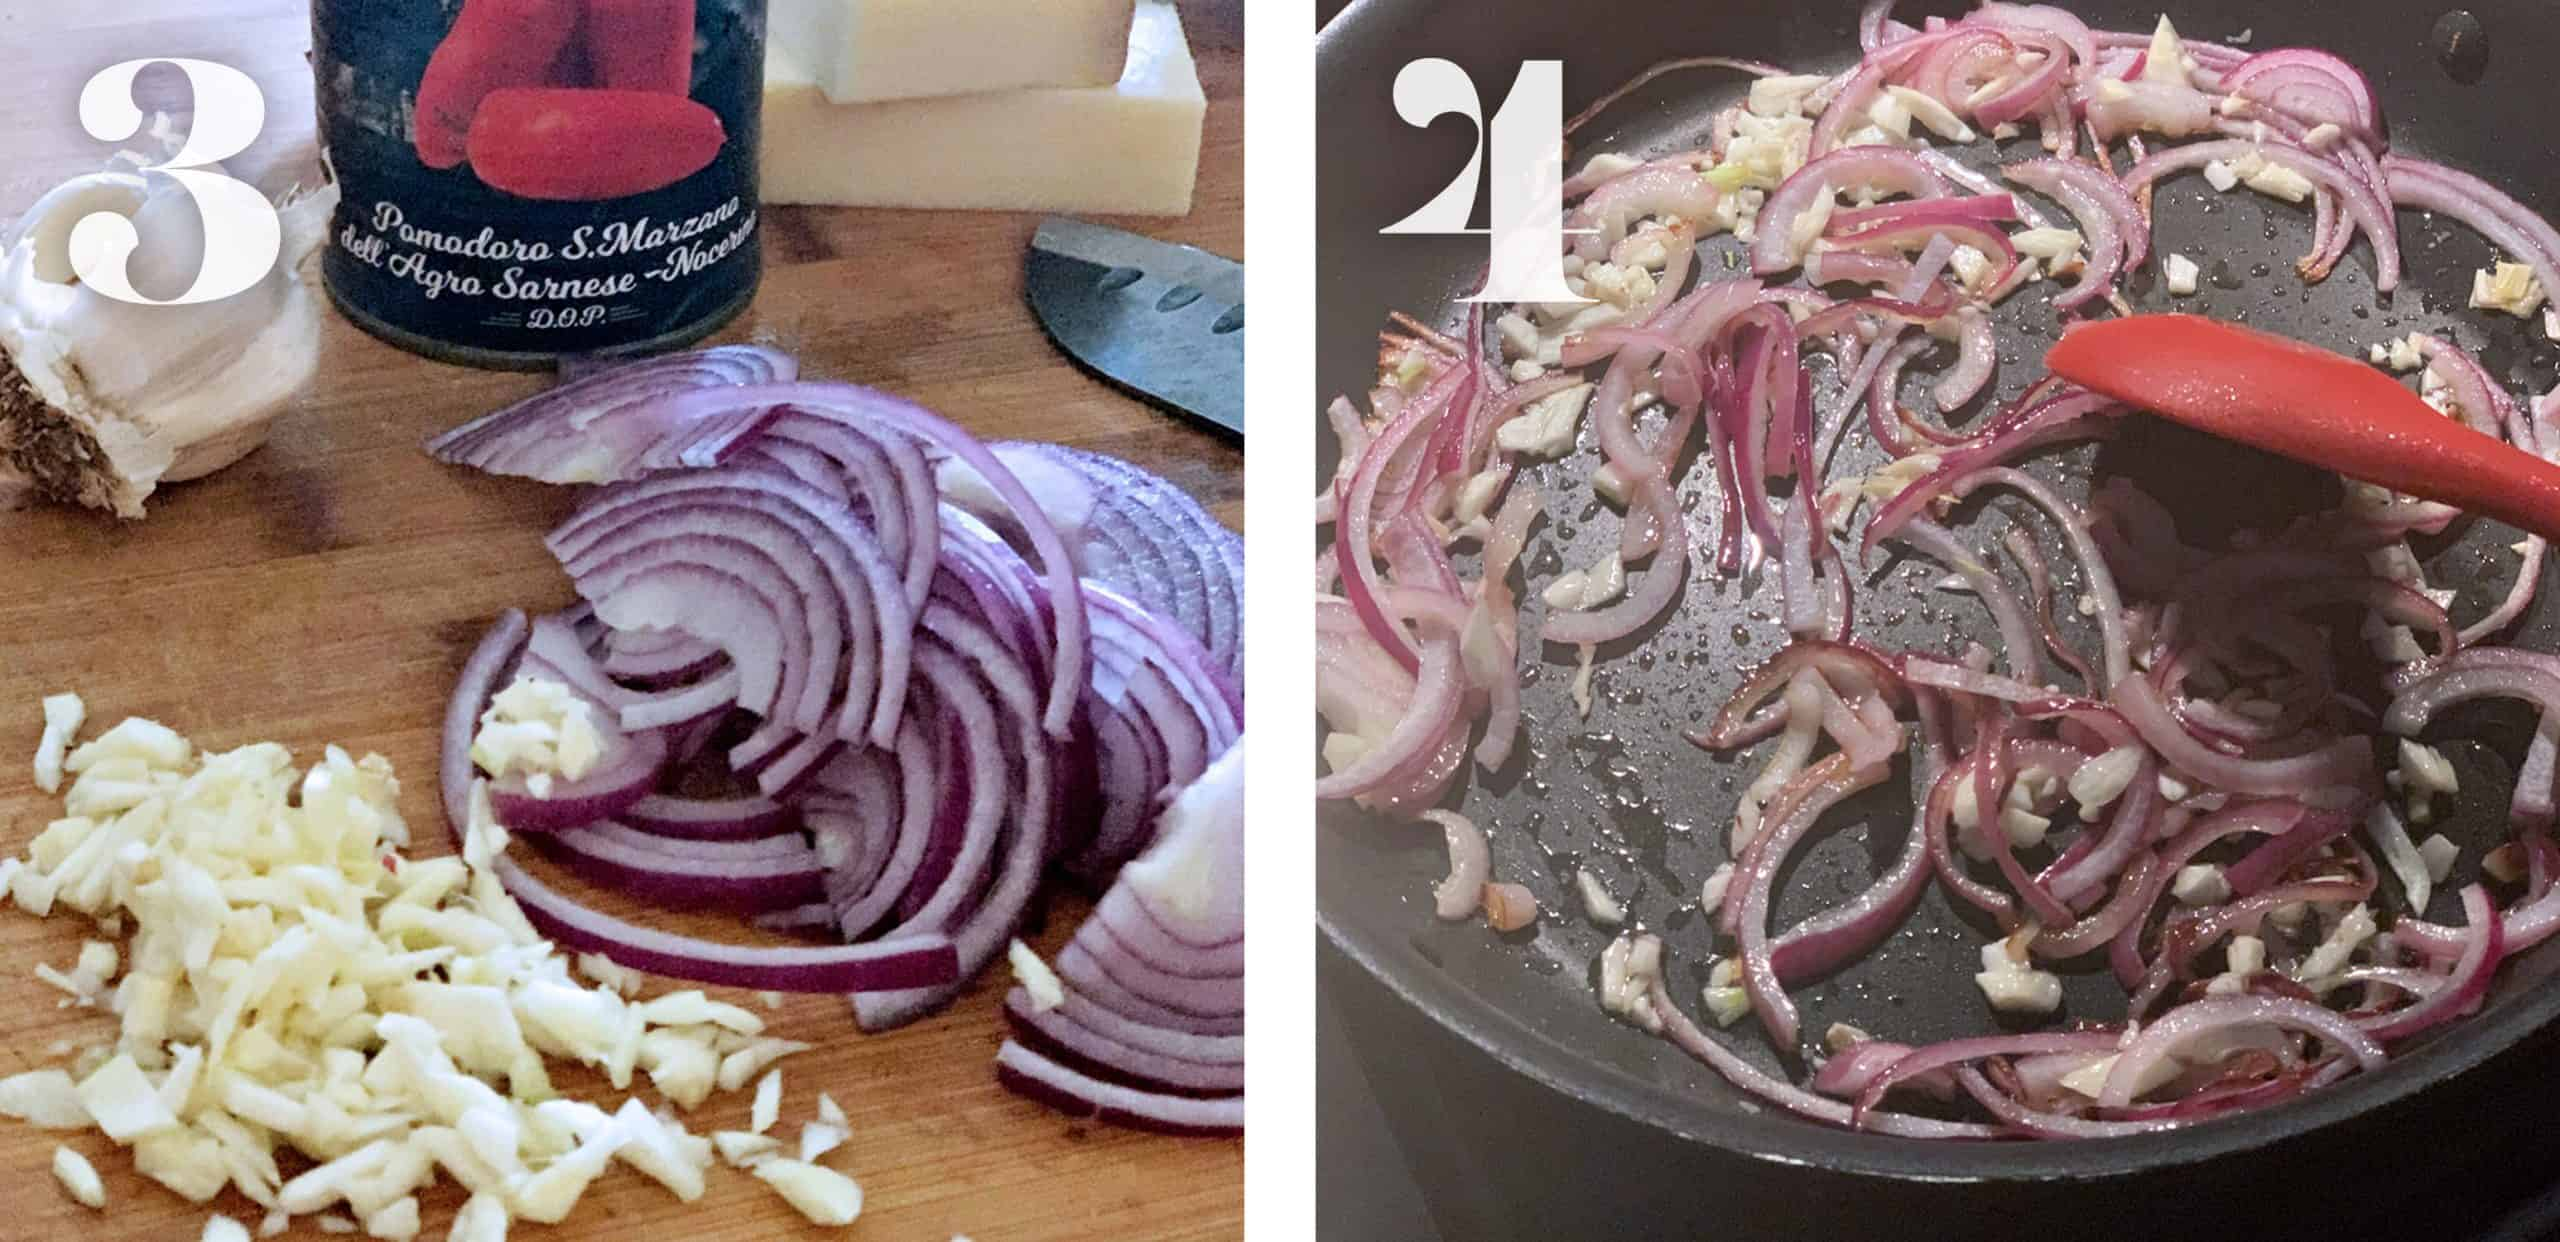 Image 3. Slicing onions and garlic. Image 4. Sliced onions and garlic in a pan sautéing.